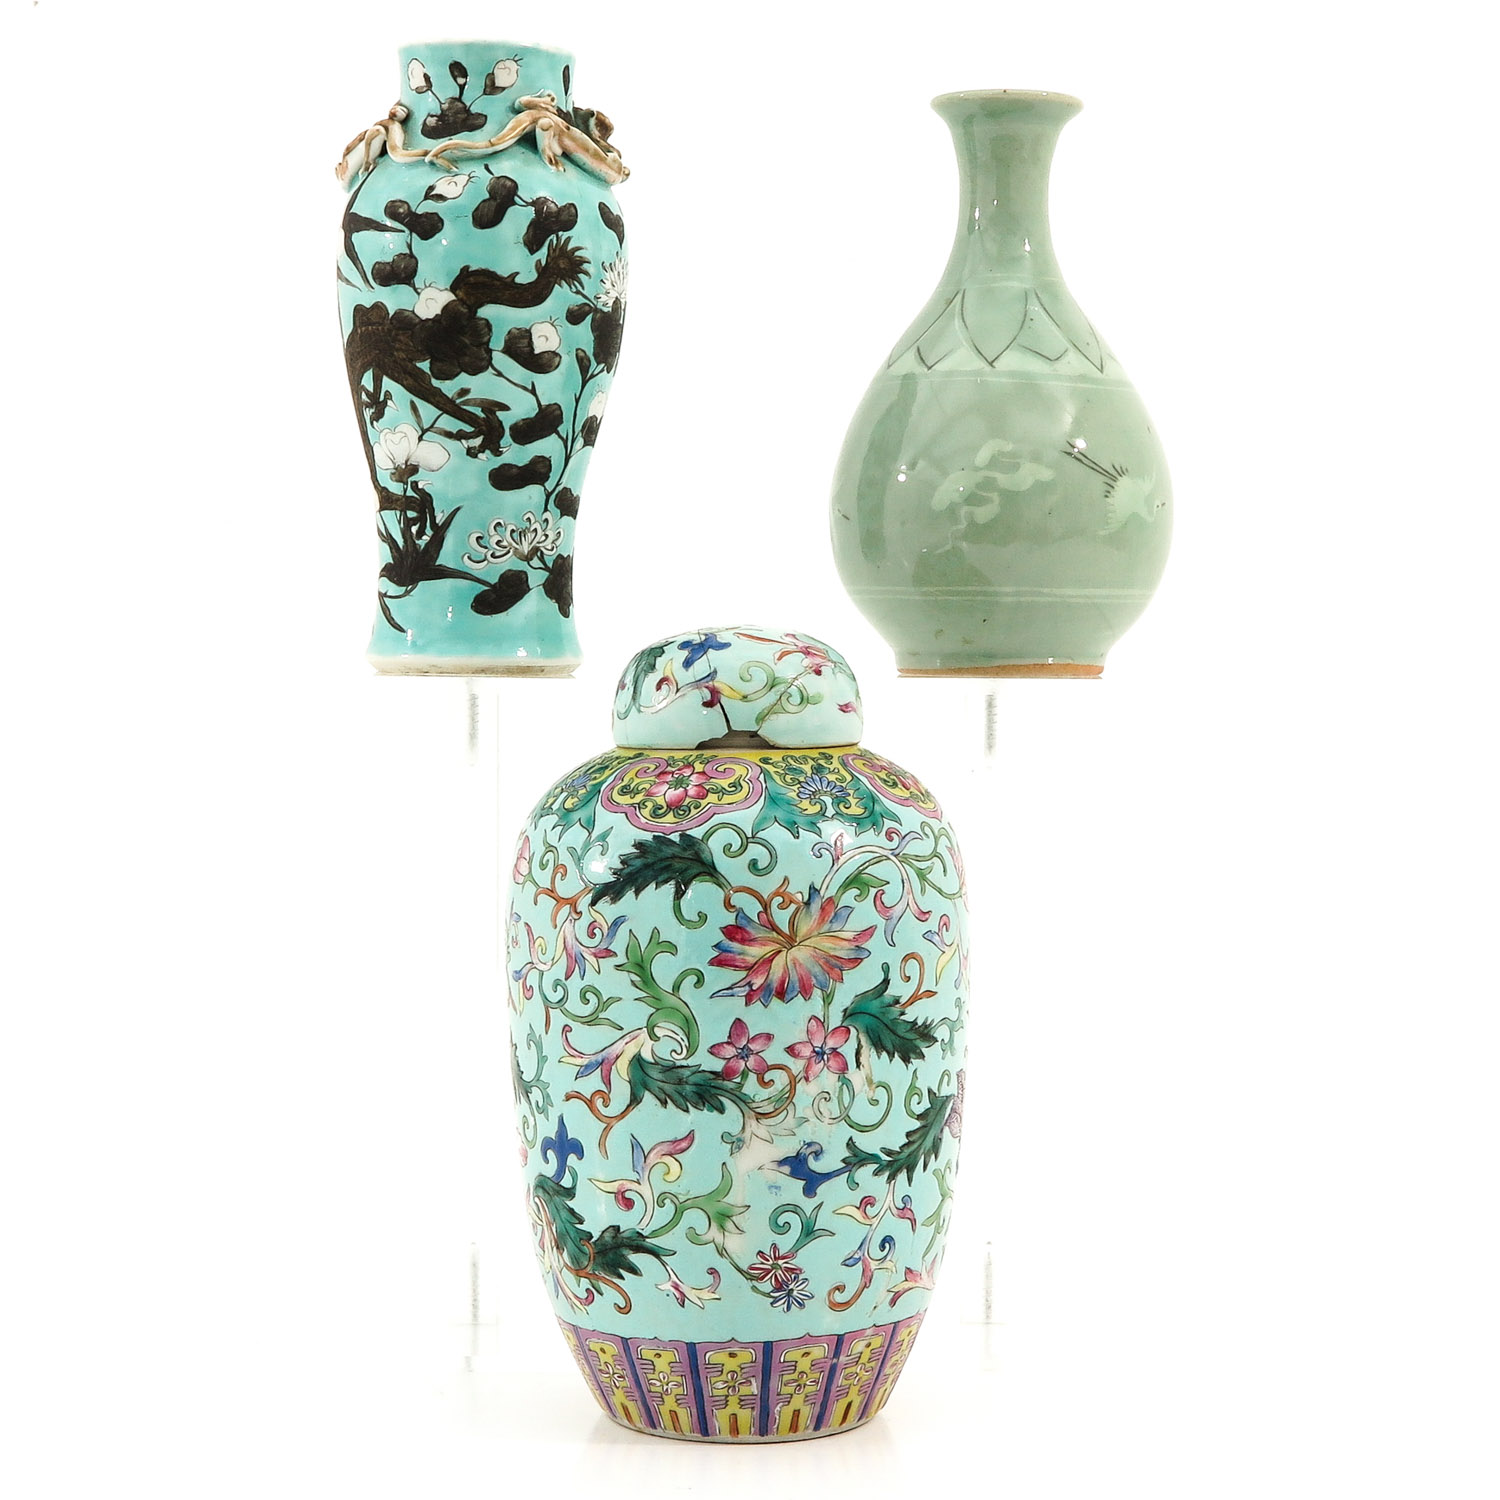 A Collection of 3 Vases - Image 2 of 9